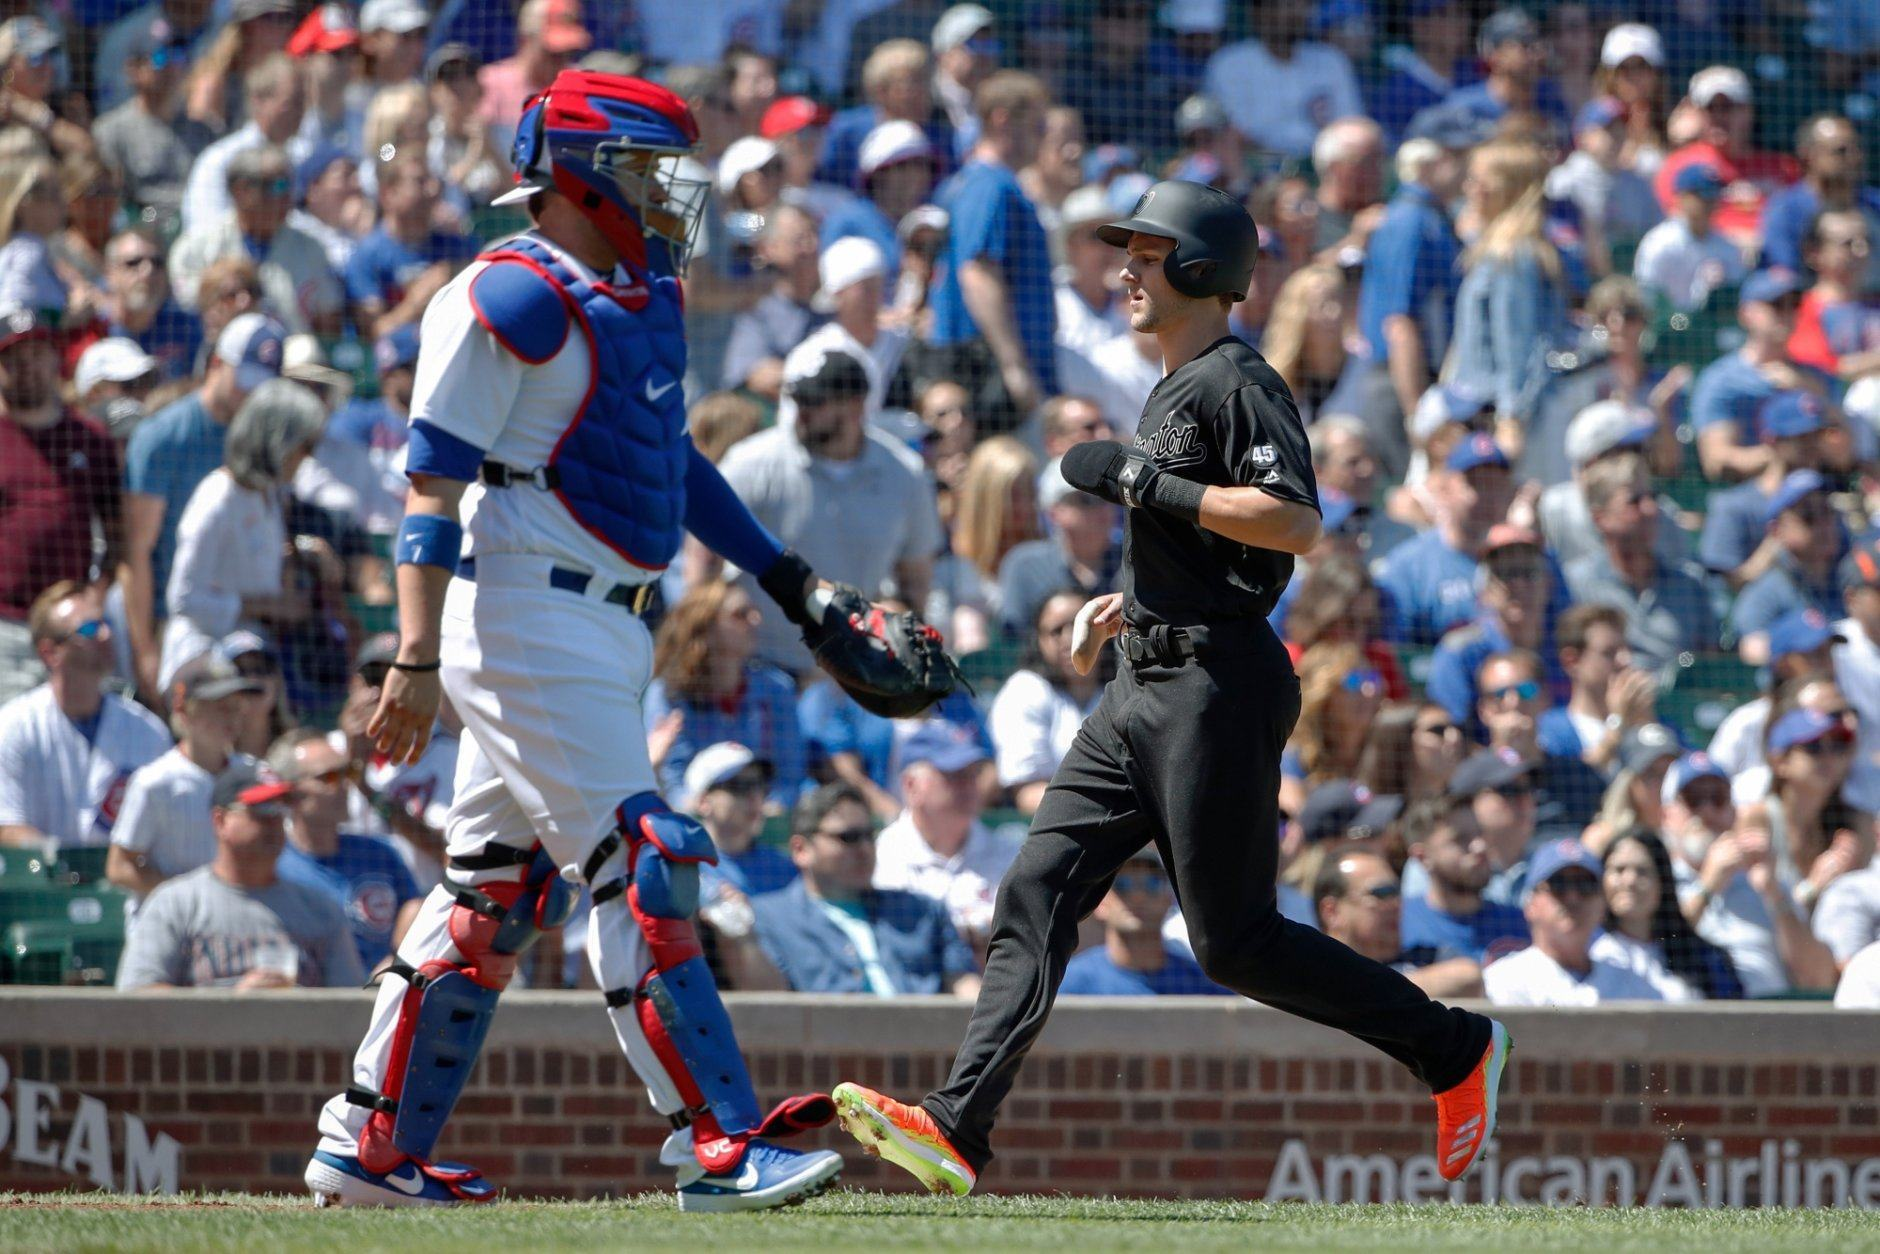 Washington Nationals' Trea Turner, right, scores against the Chicago Cubs on a sacrifice fly hit by Washington Nationals' Anthony Rendon during the first inning of a baseball game, Saturday, Aug. 24, 2019, in Chicago. (AP Photo/Kamil Krzaczynski)